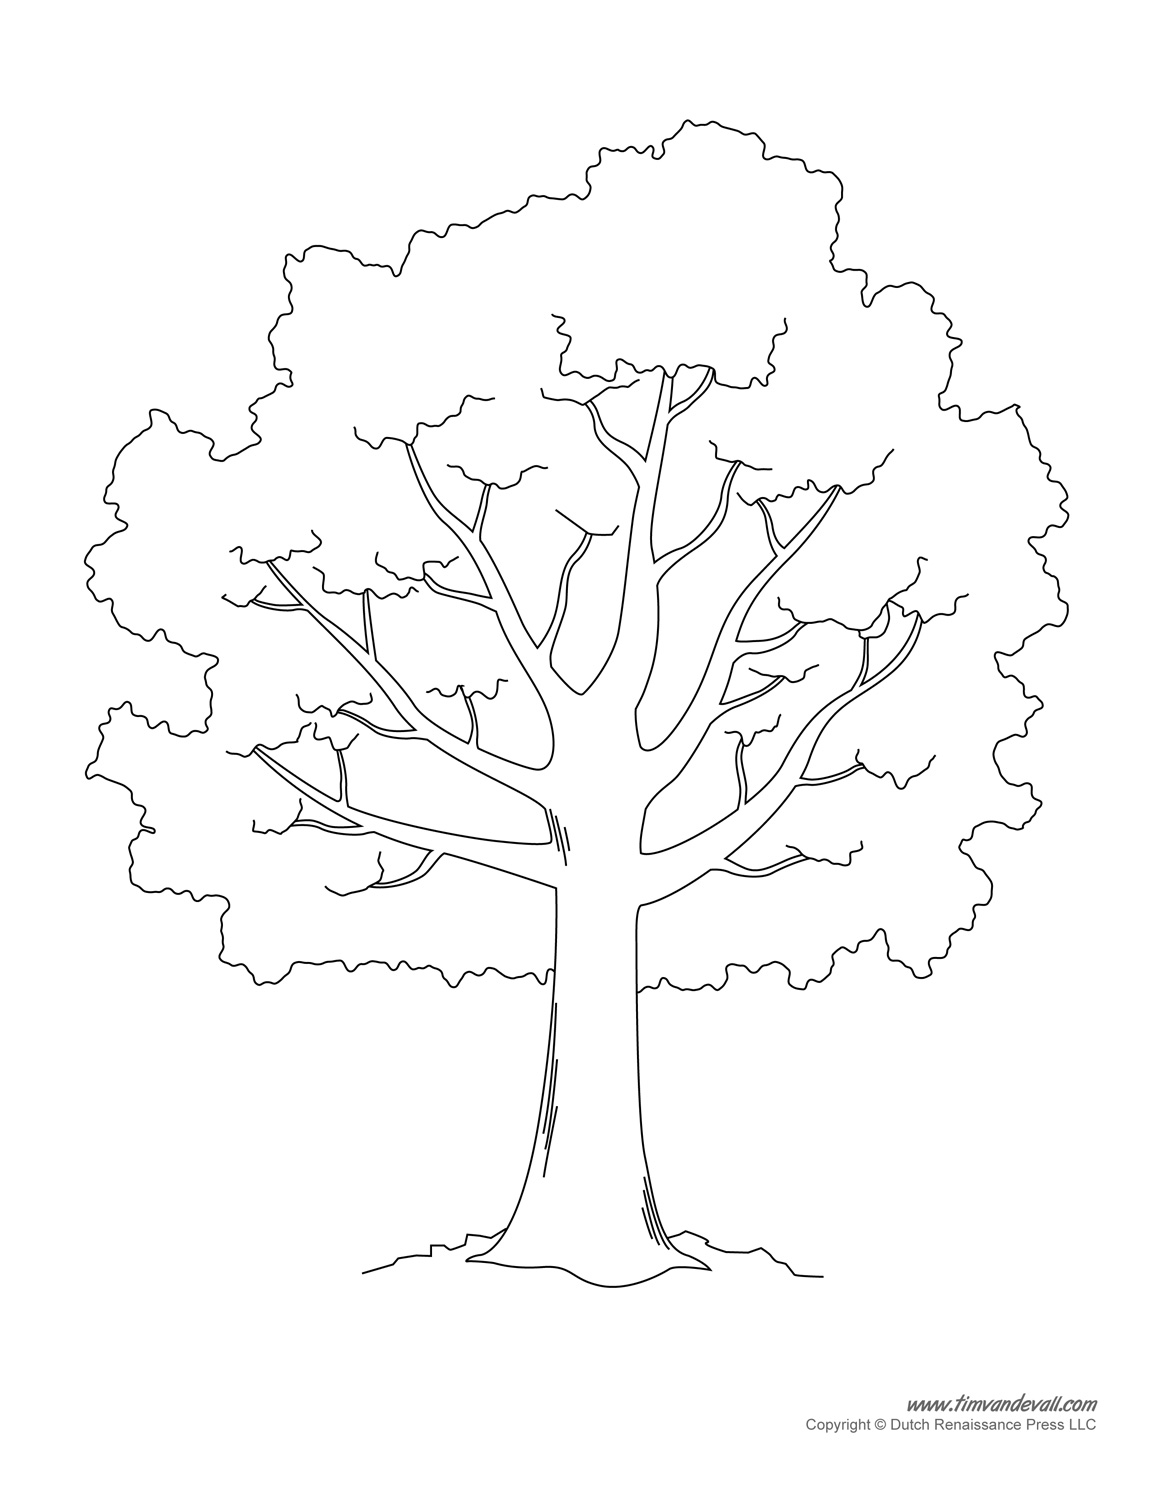 Tree Without Leaves Drawing At Getdrawings